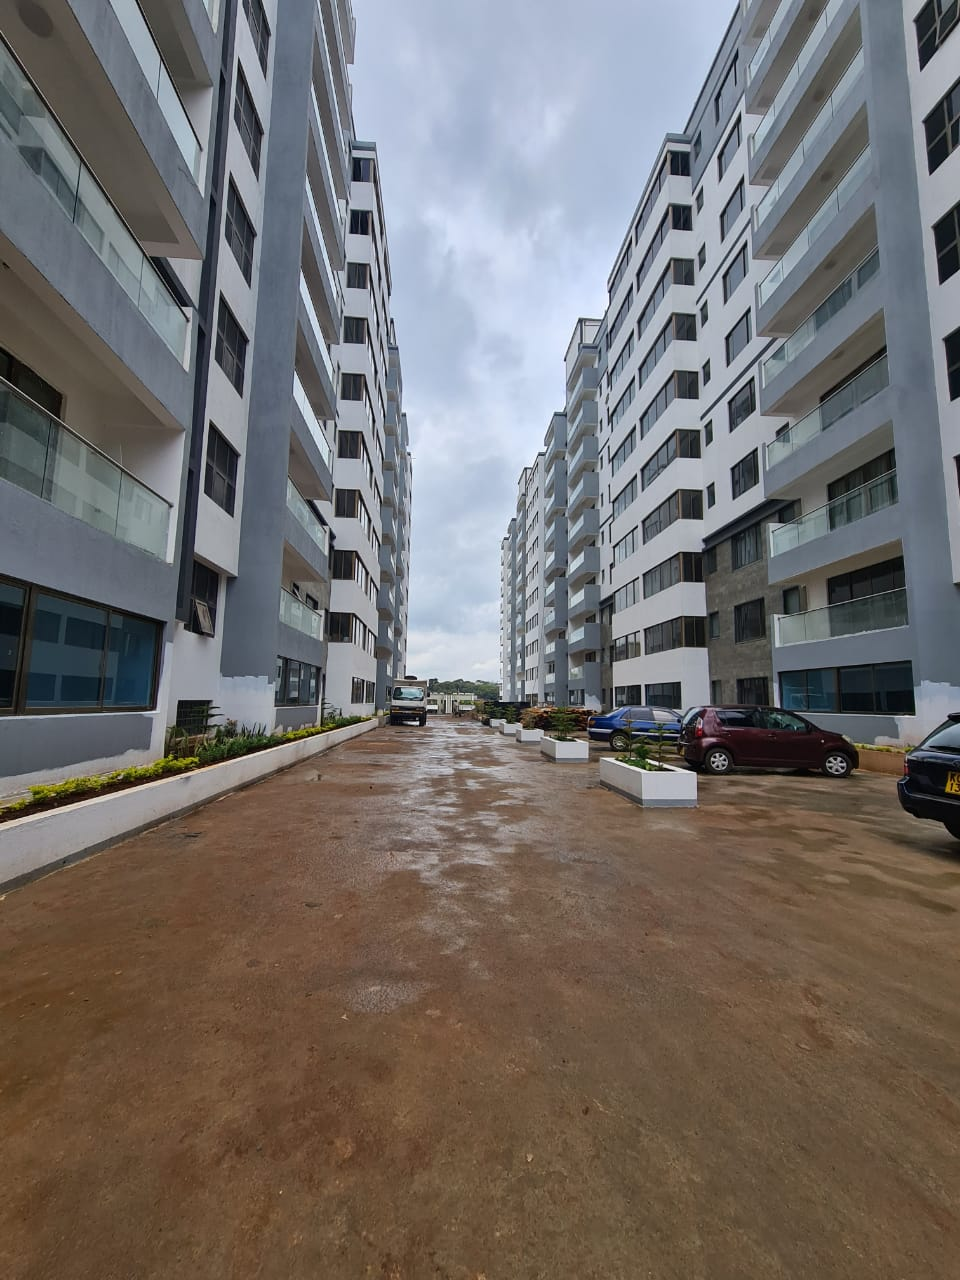 Homely 3 bedroom apartment with DSQ, Swimming Pool For Sale at Ksh18.5M in Lavington, along Hatheru Road